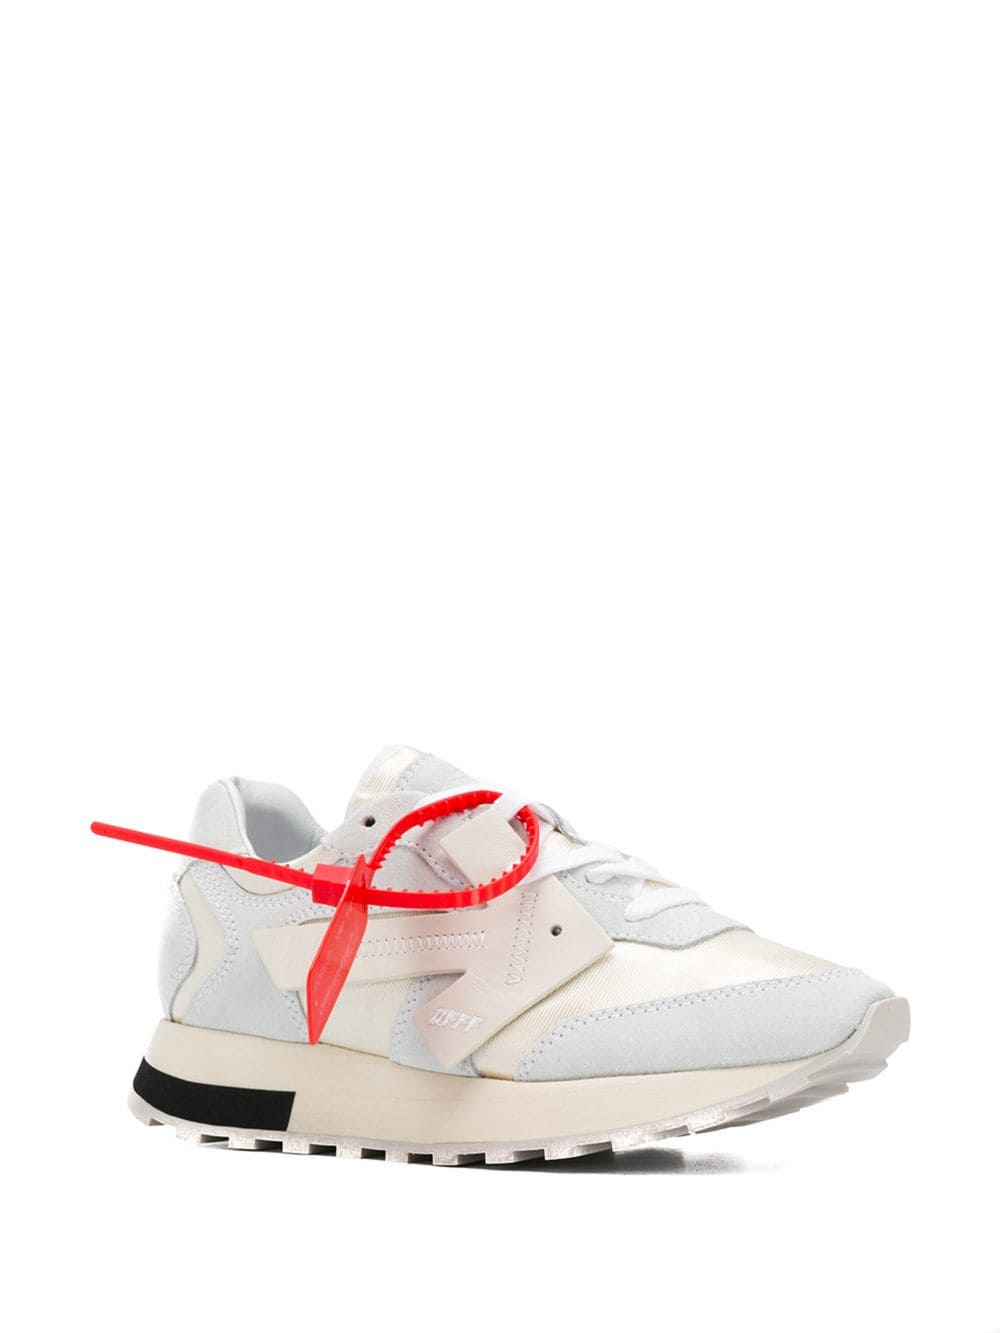 Off-White Women's Runner Sneakers | MAISONDEFASHION.COM